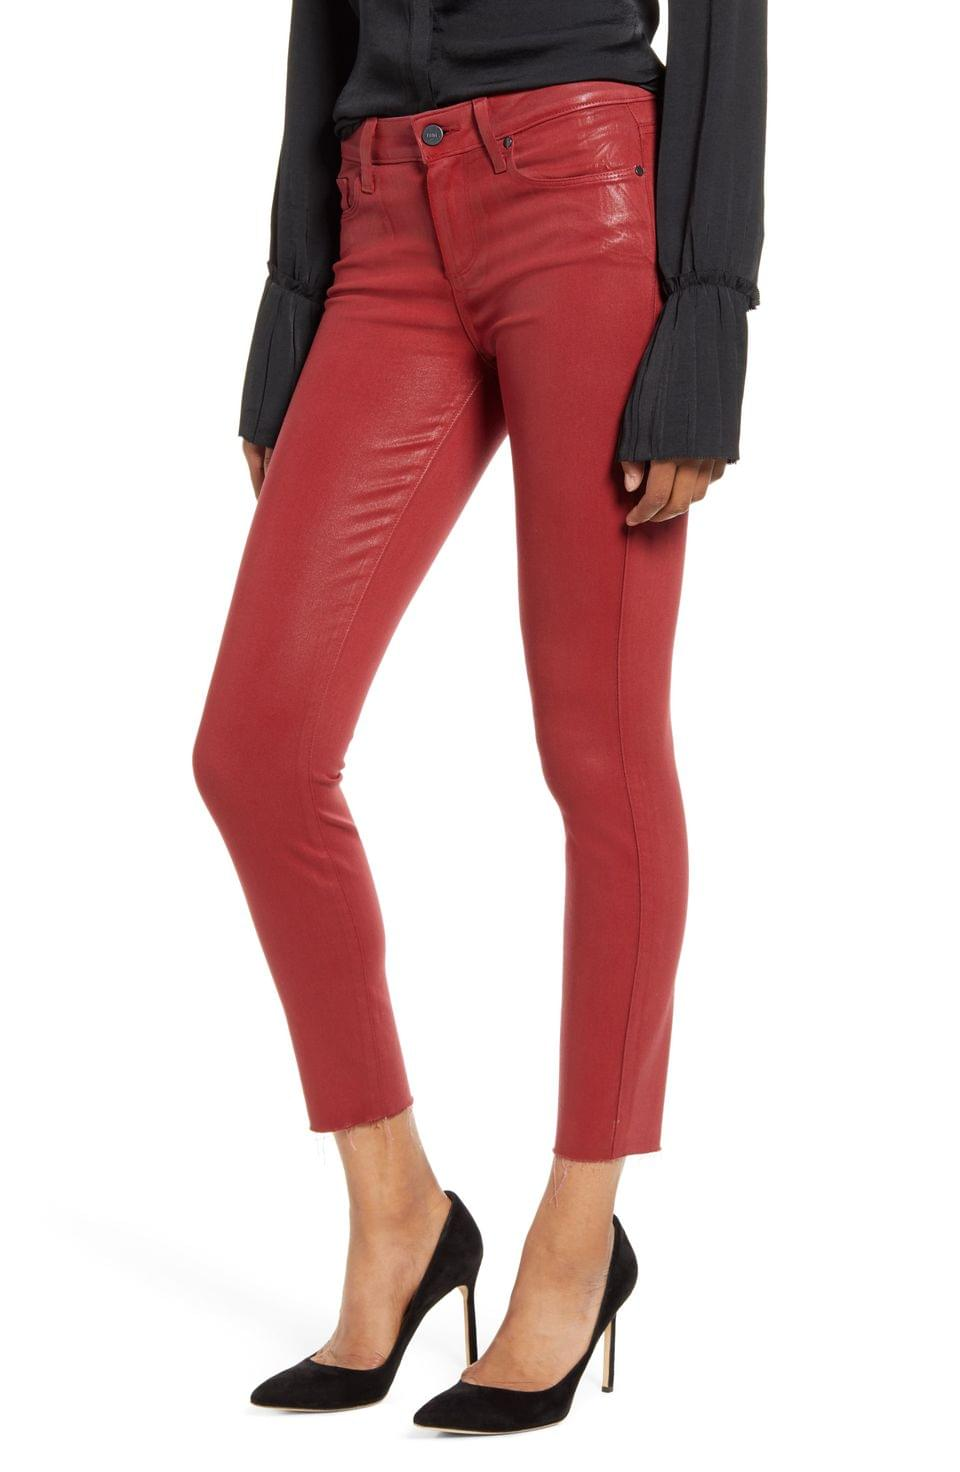 Women's PAIGE Transcend - Verdugo Coated Ankle Skinny Jeans (Ruby Rouge Luxe Coating)